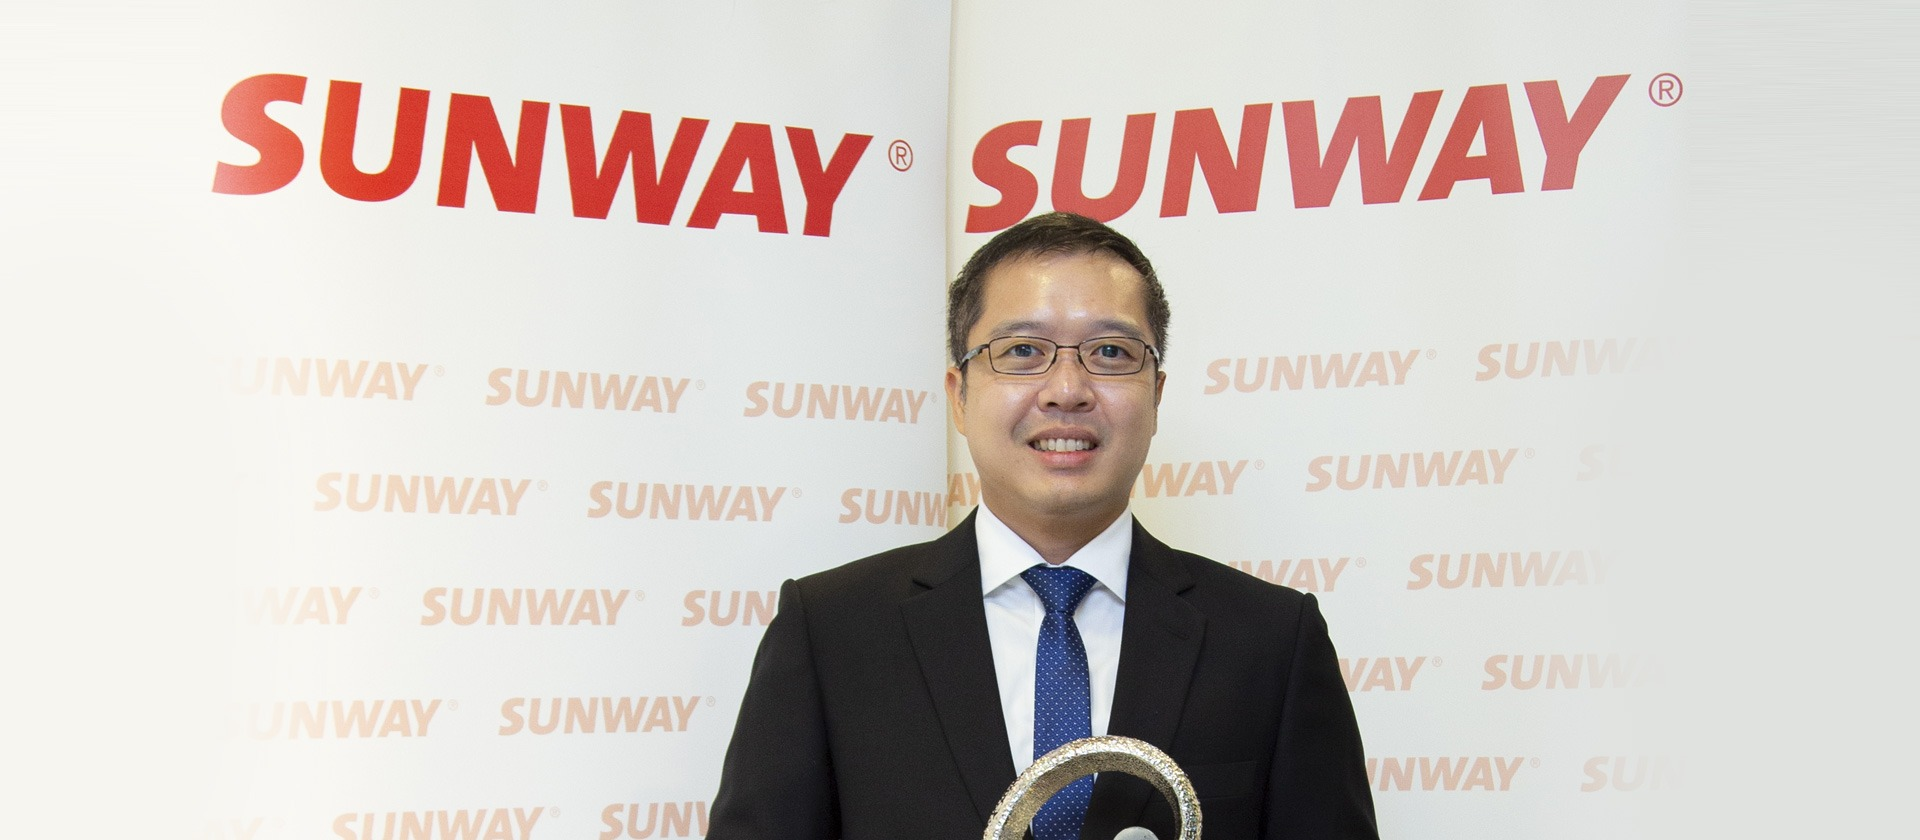 Sunway Group CEO, Digital & Strategic Investments, Evan Cheah